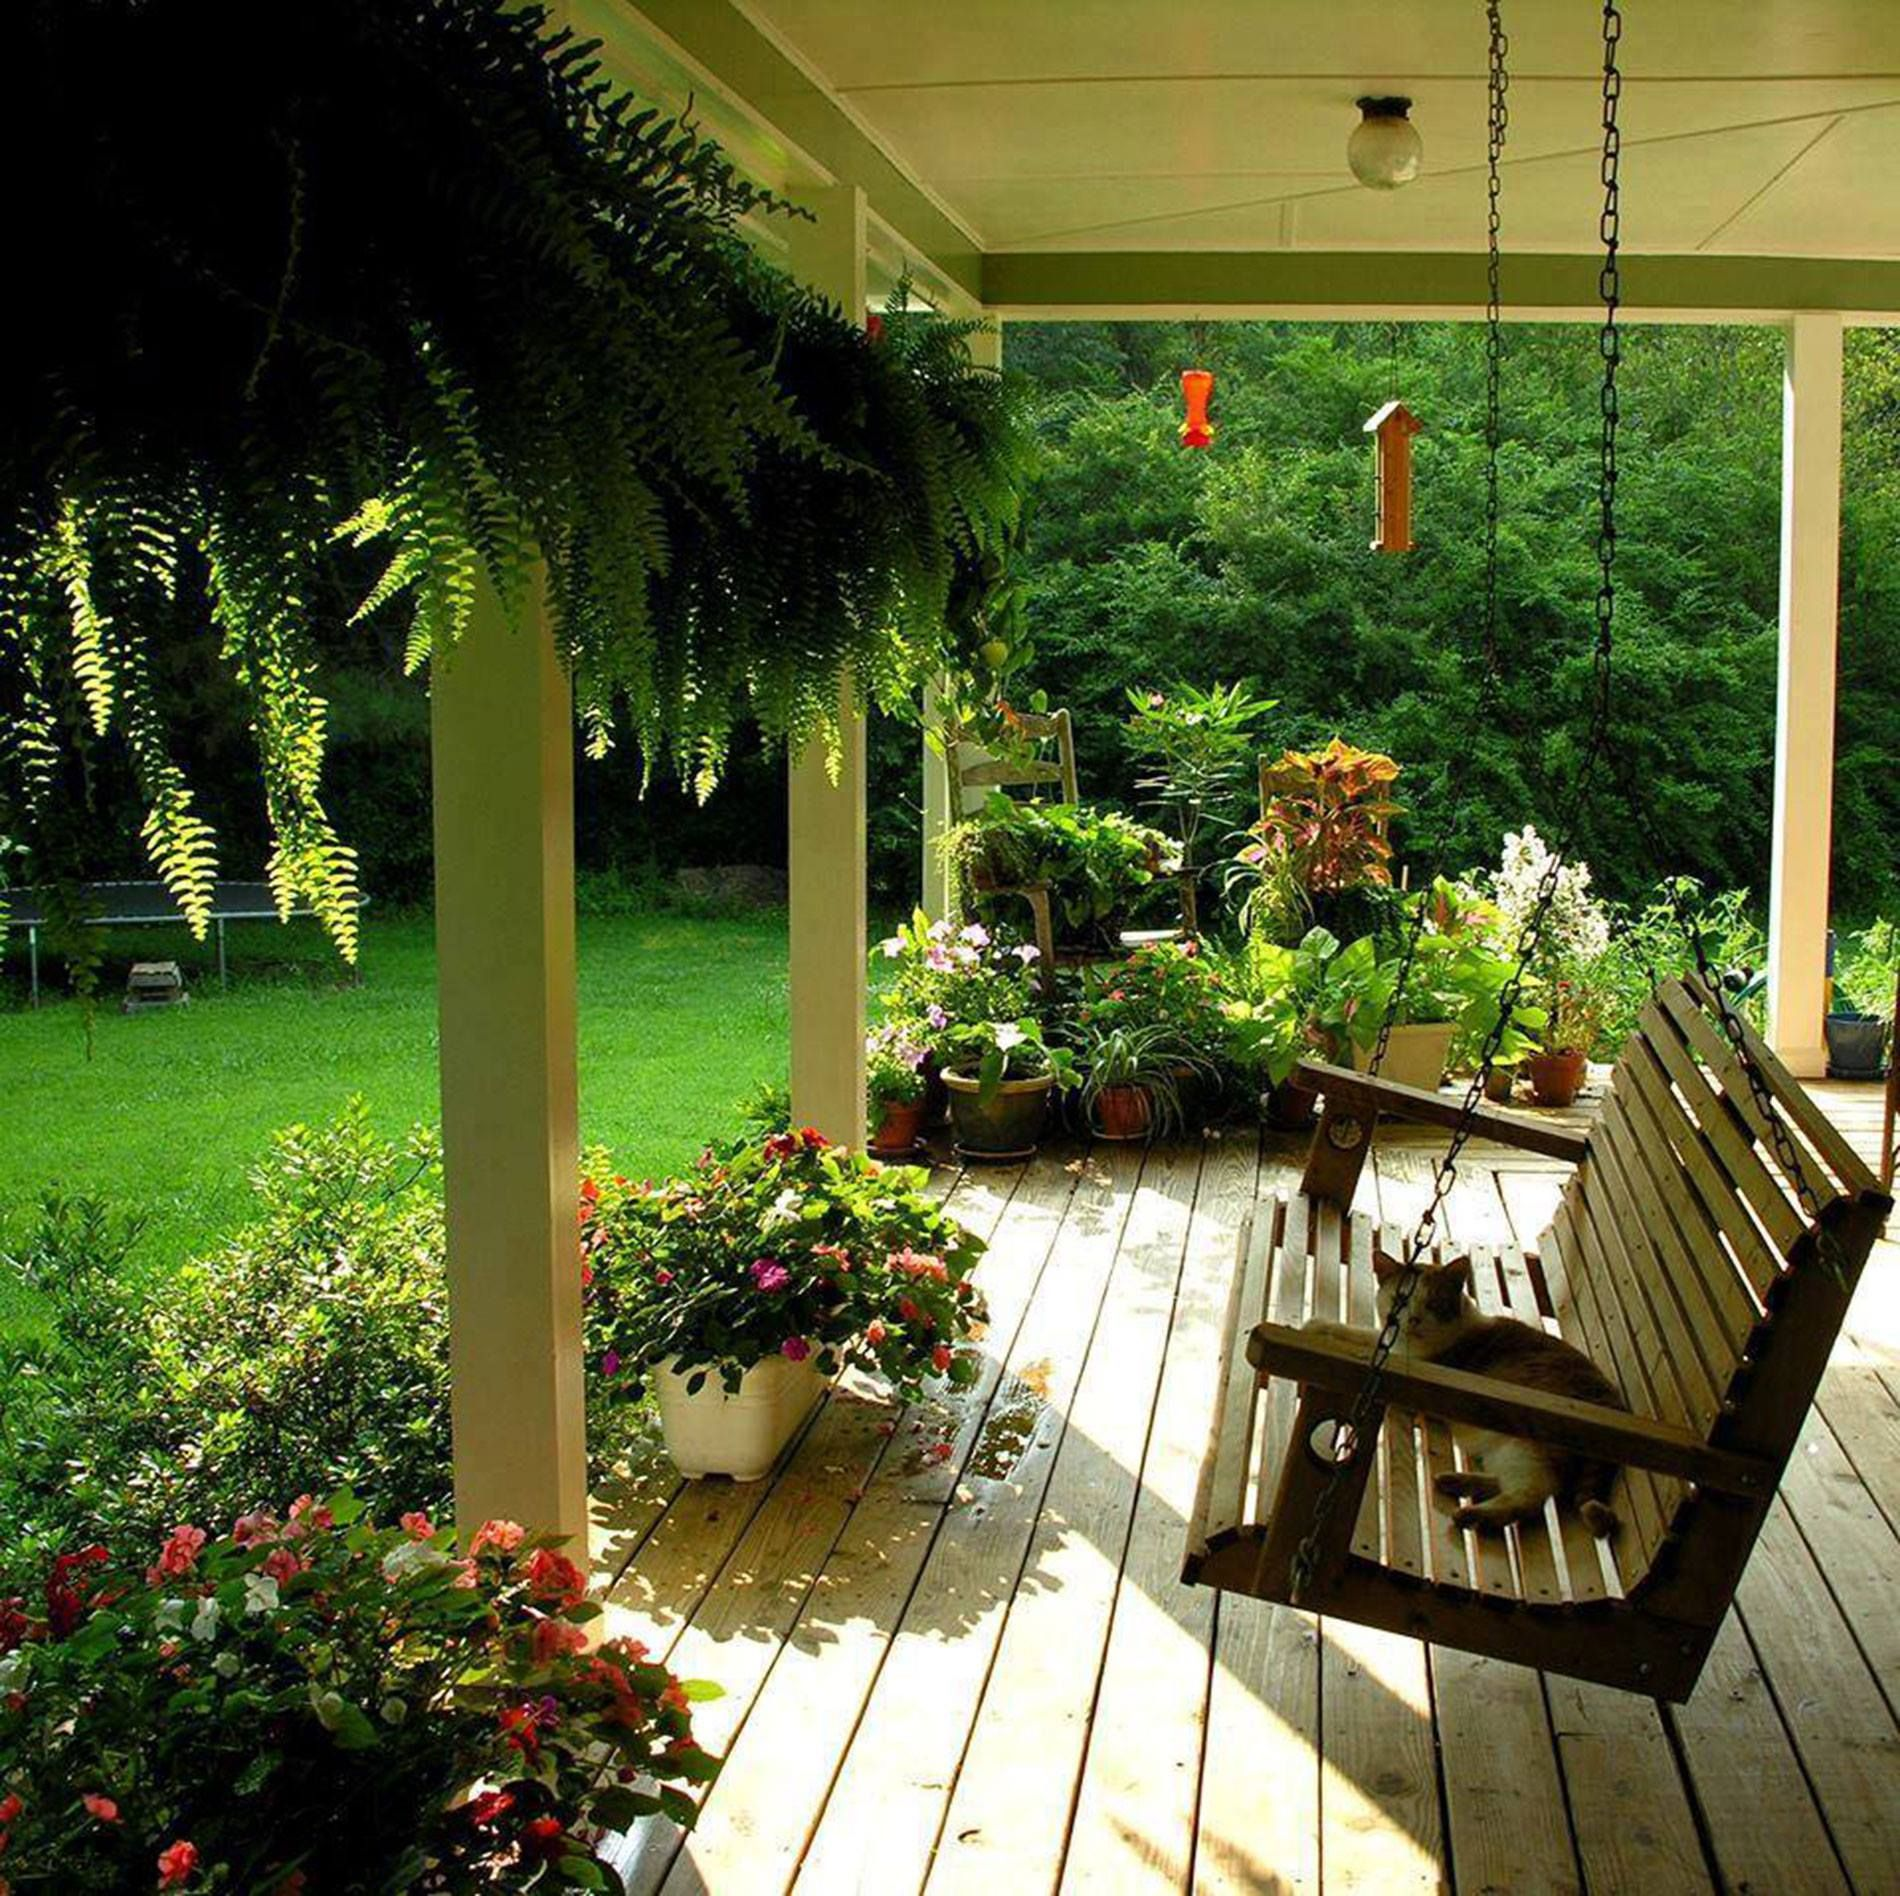 Well i never realized how cute under a deck can be under deck